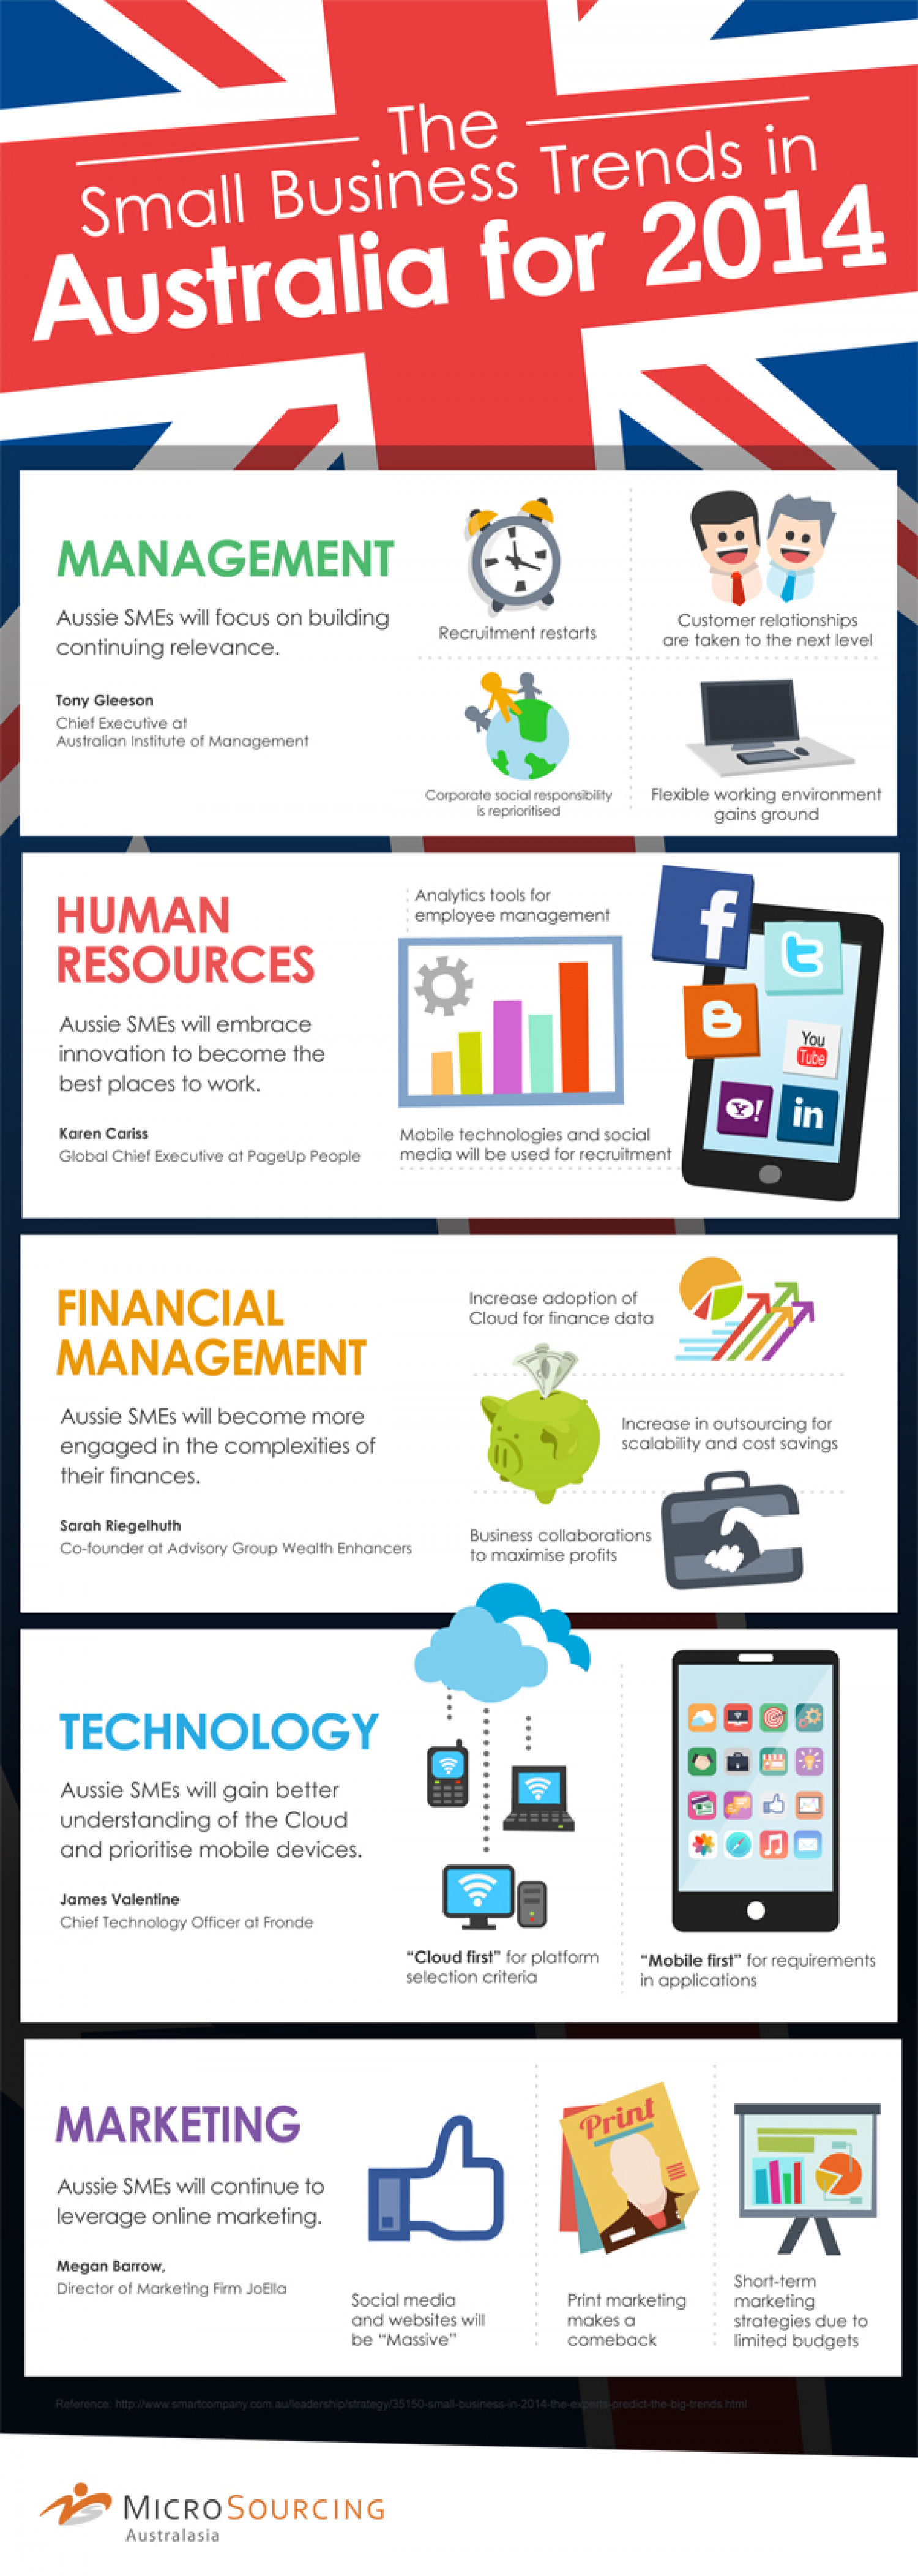 The Small Business Trends in Australia for 2014 Infographic